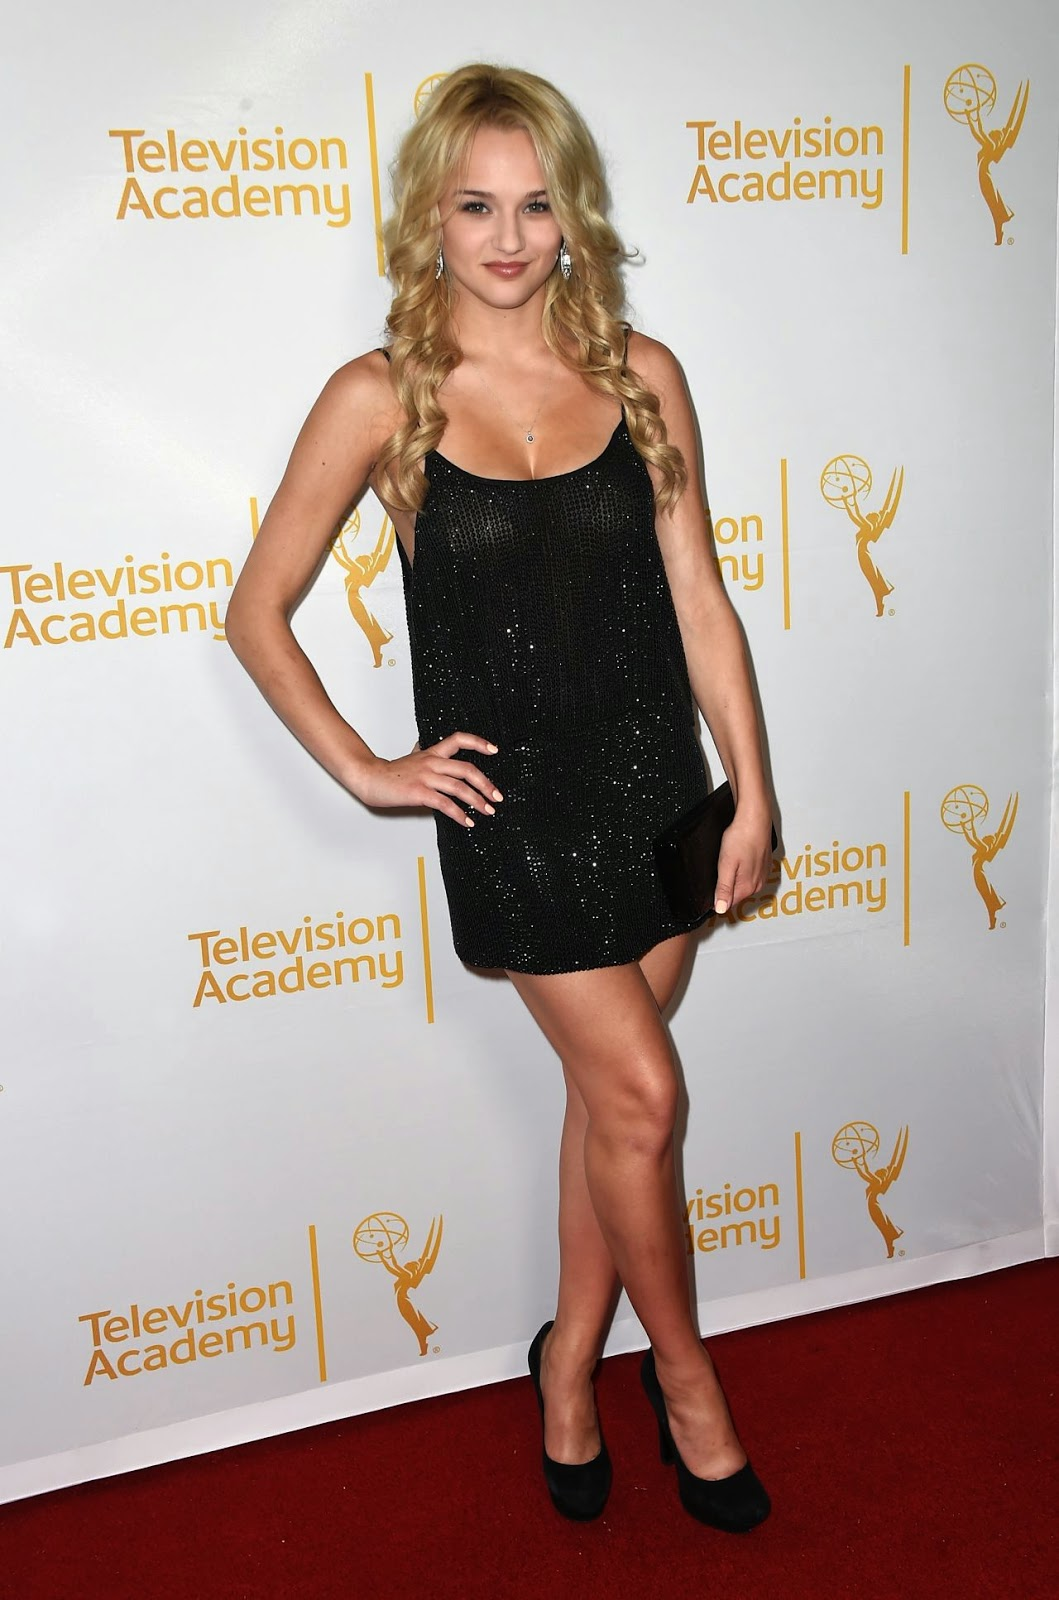 Hunter Haley King - Daytime Emmy Nominee Reception June 2014